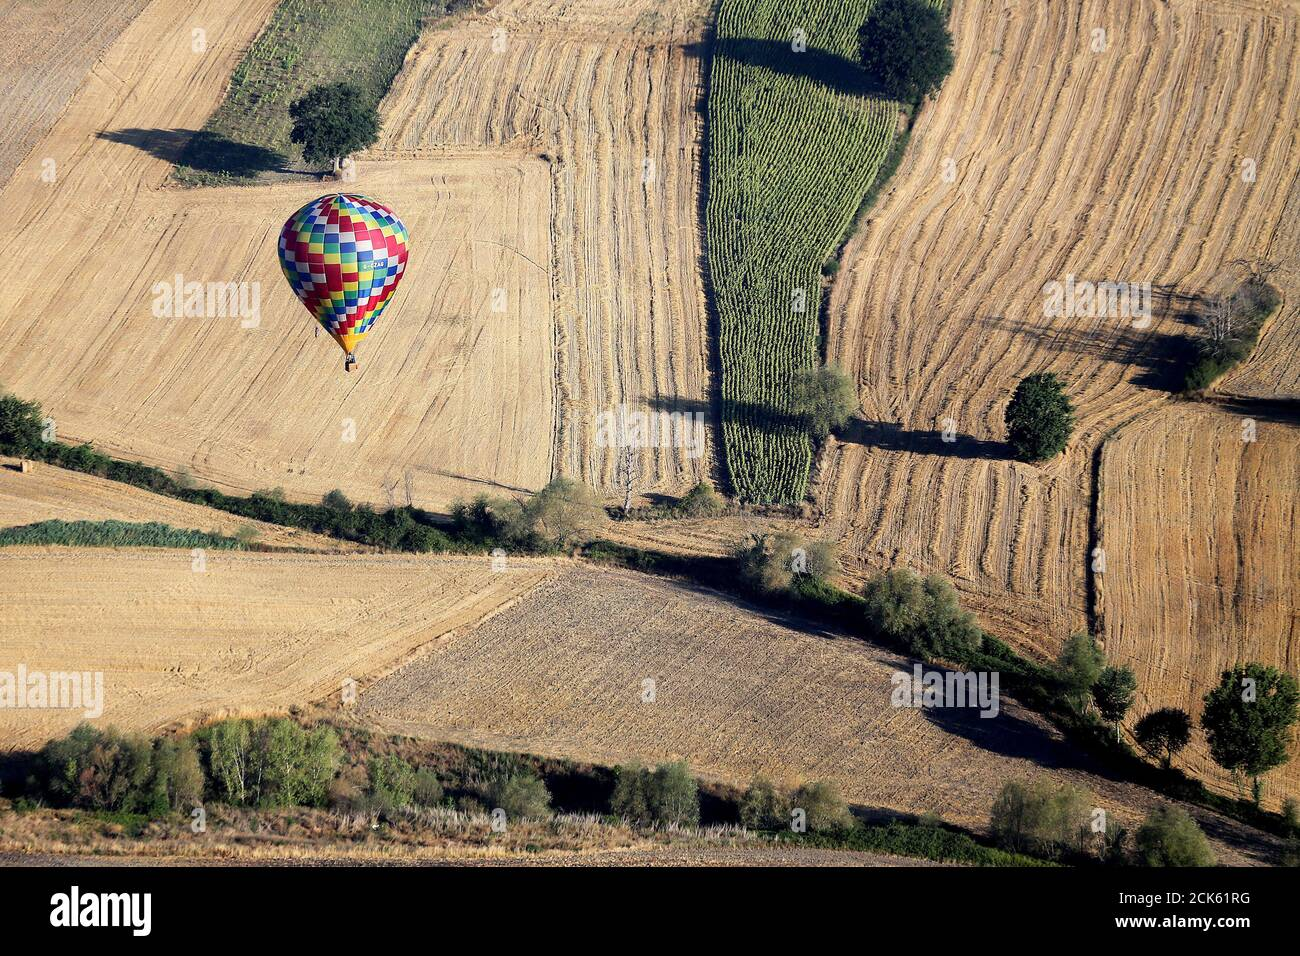 A hot air balloon flies during a hot air ballooning event in Todi, Italy, July 29, 2017. REUTERS/Alessandro Bianchi Stock Photo